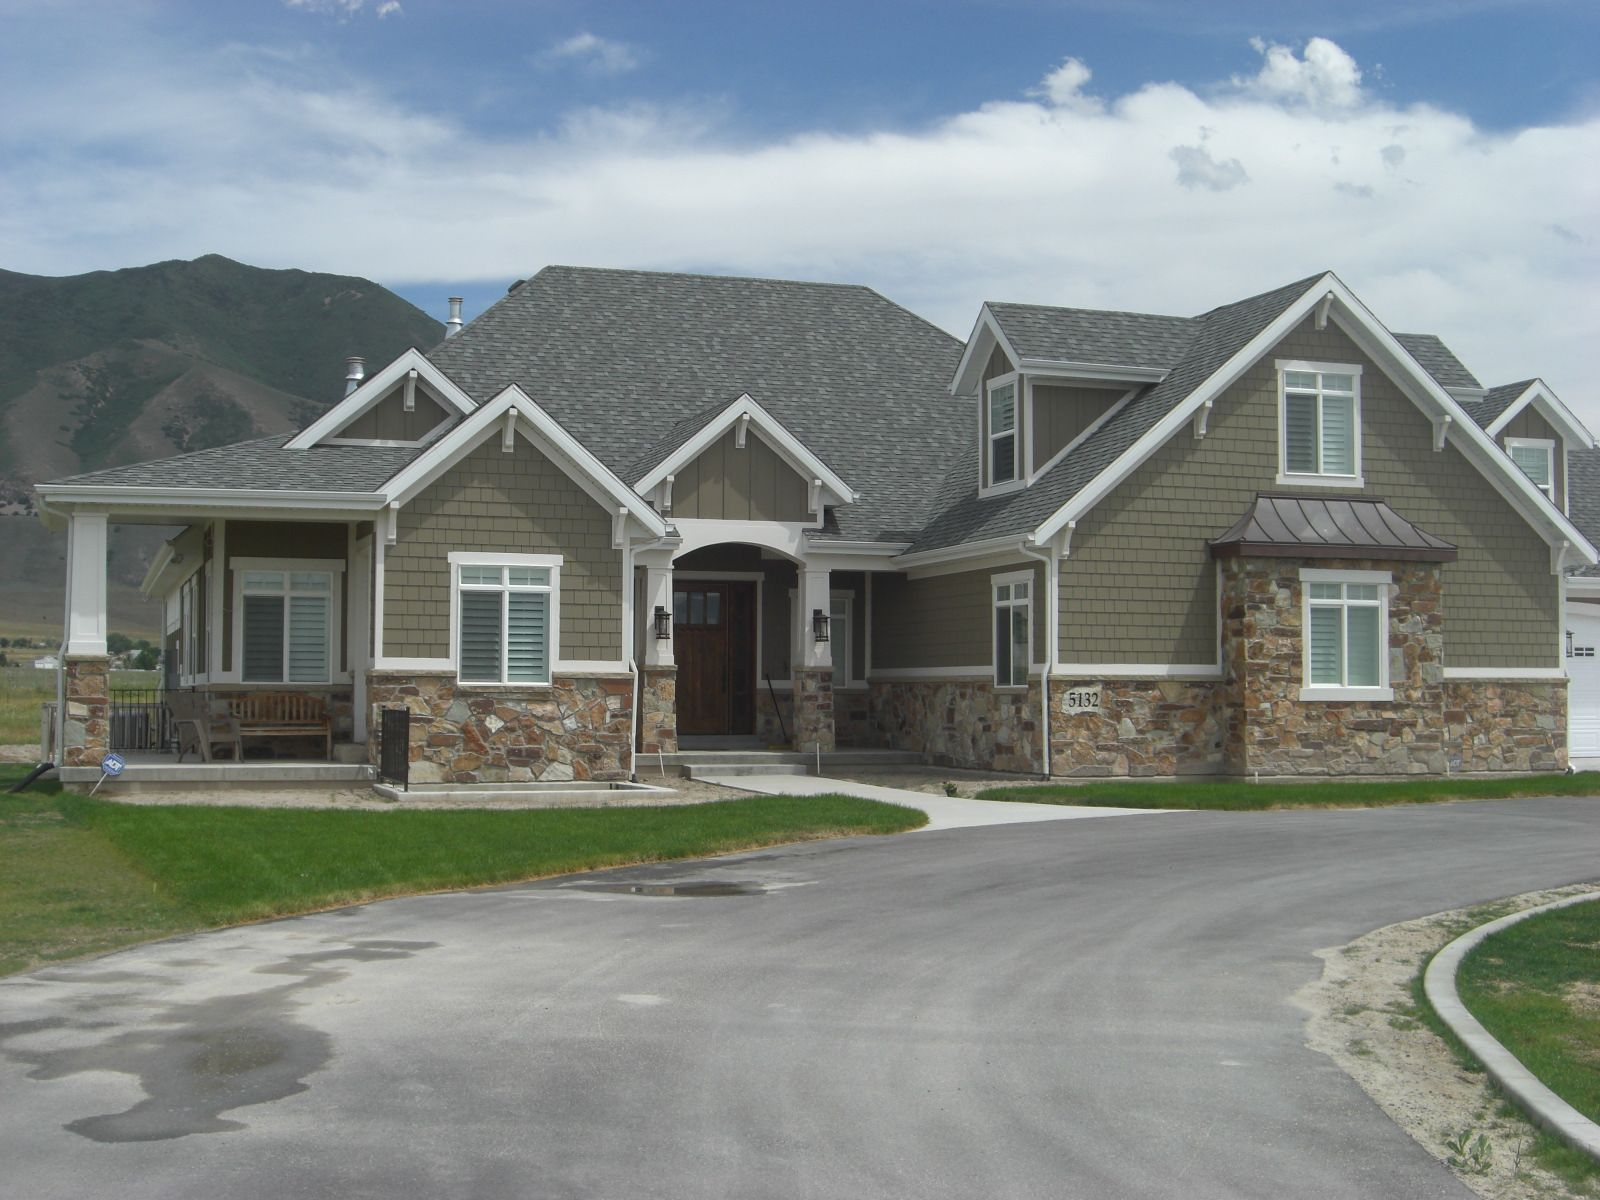 pictures of houses with stone and siding Google Search